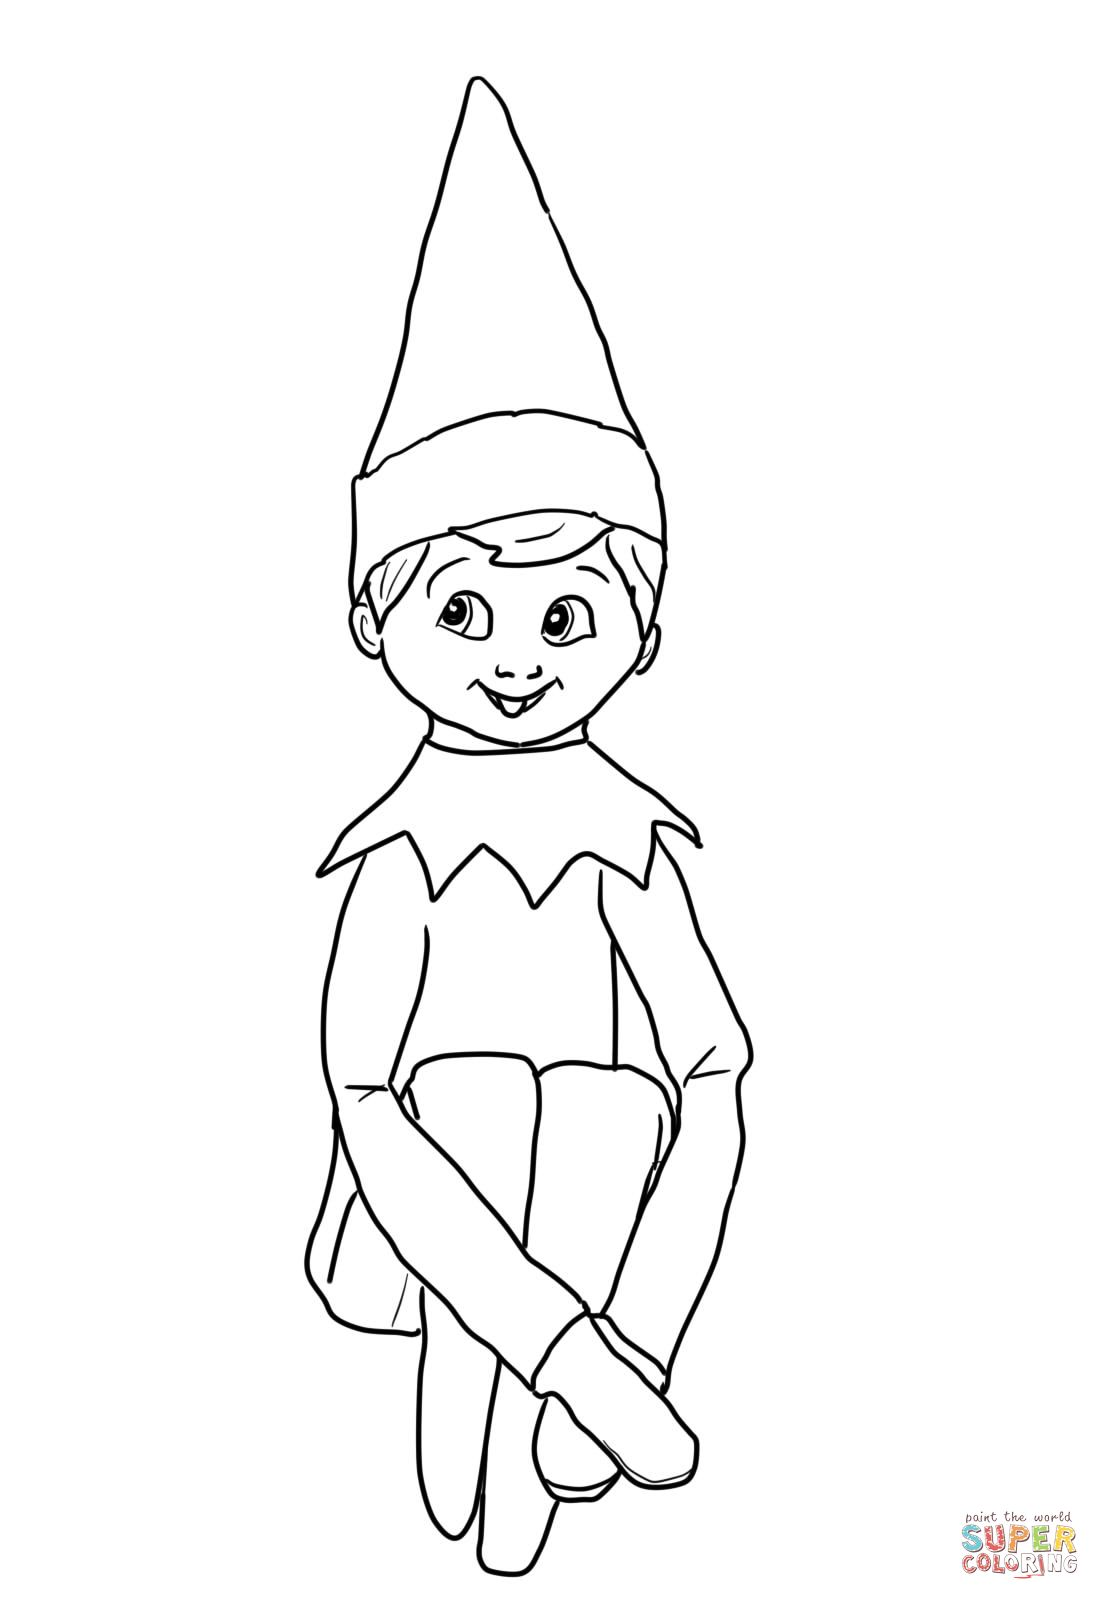 Santa On Vacation Coloring Pages With Girl Elf The Shelf You Might Also Be Interested